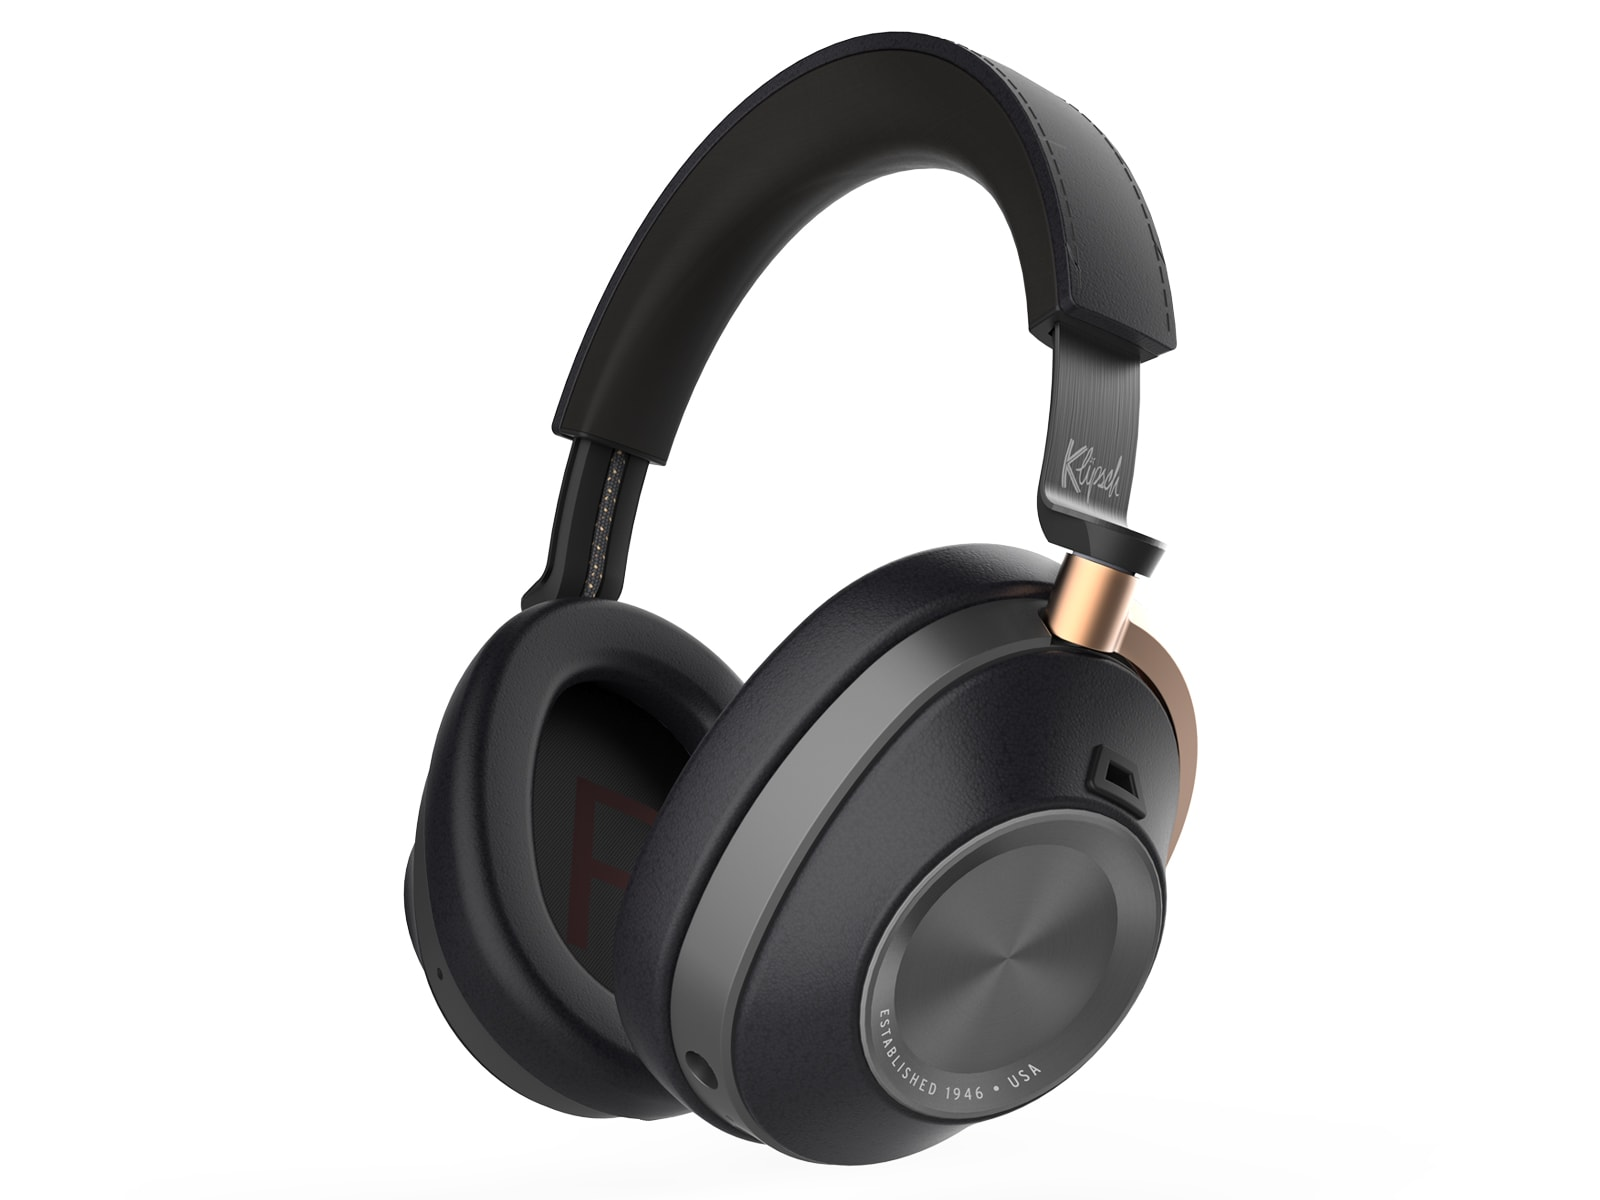 Klipsch over-ear noise cancelling headphones